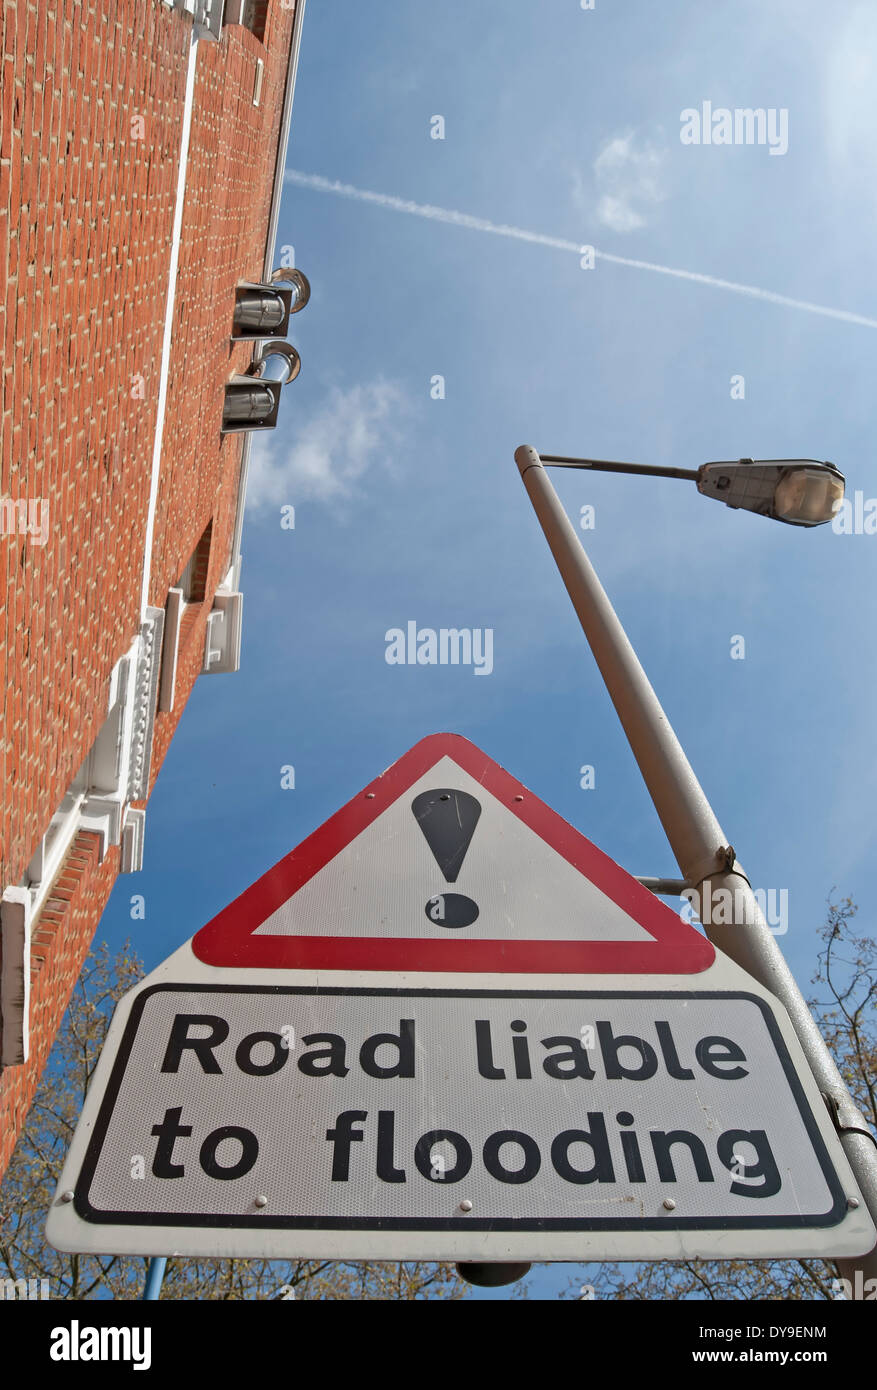 road liable to flooding sign with exclamation mark above, near the river thames at putney, southwest london, england Stock Photo